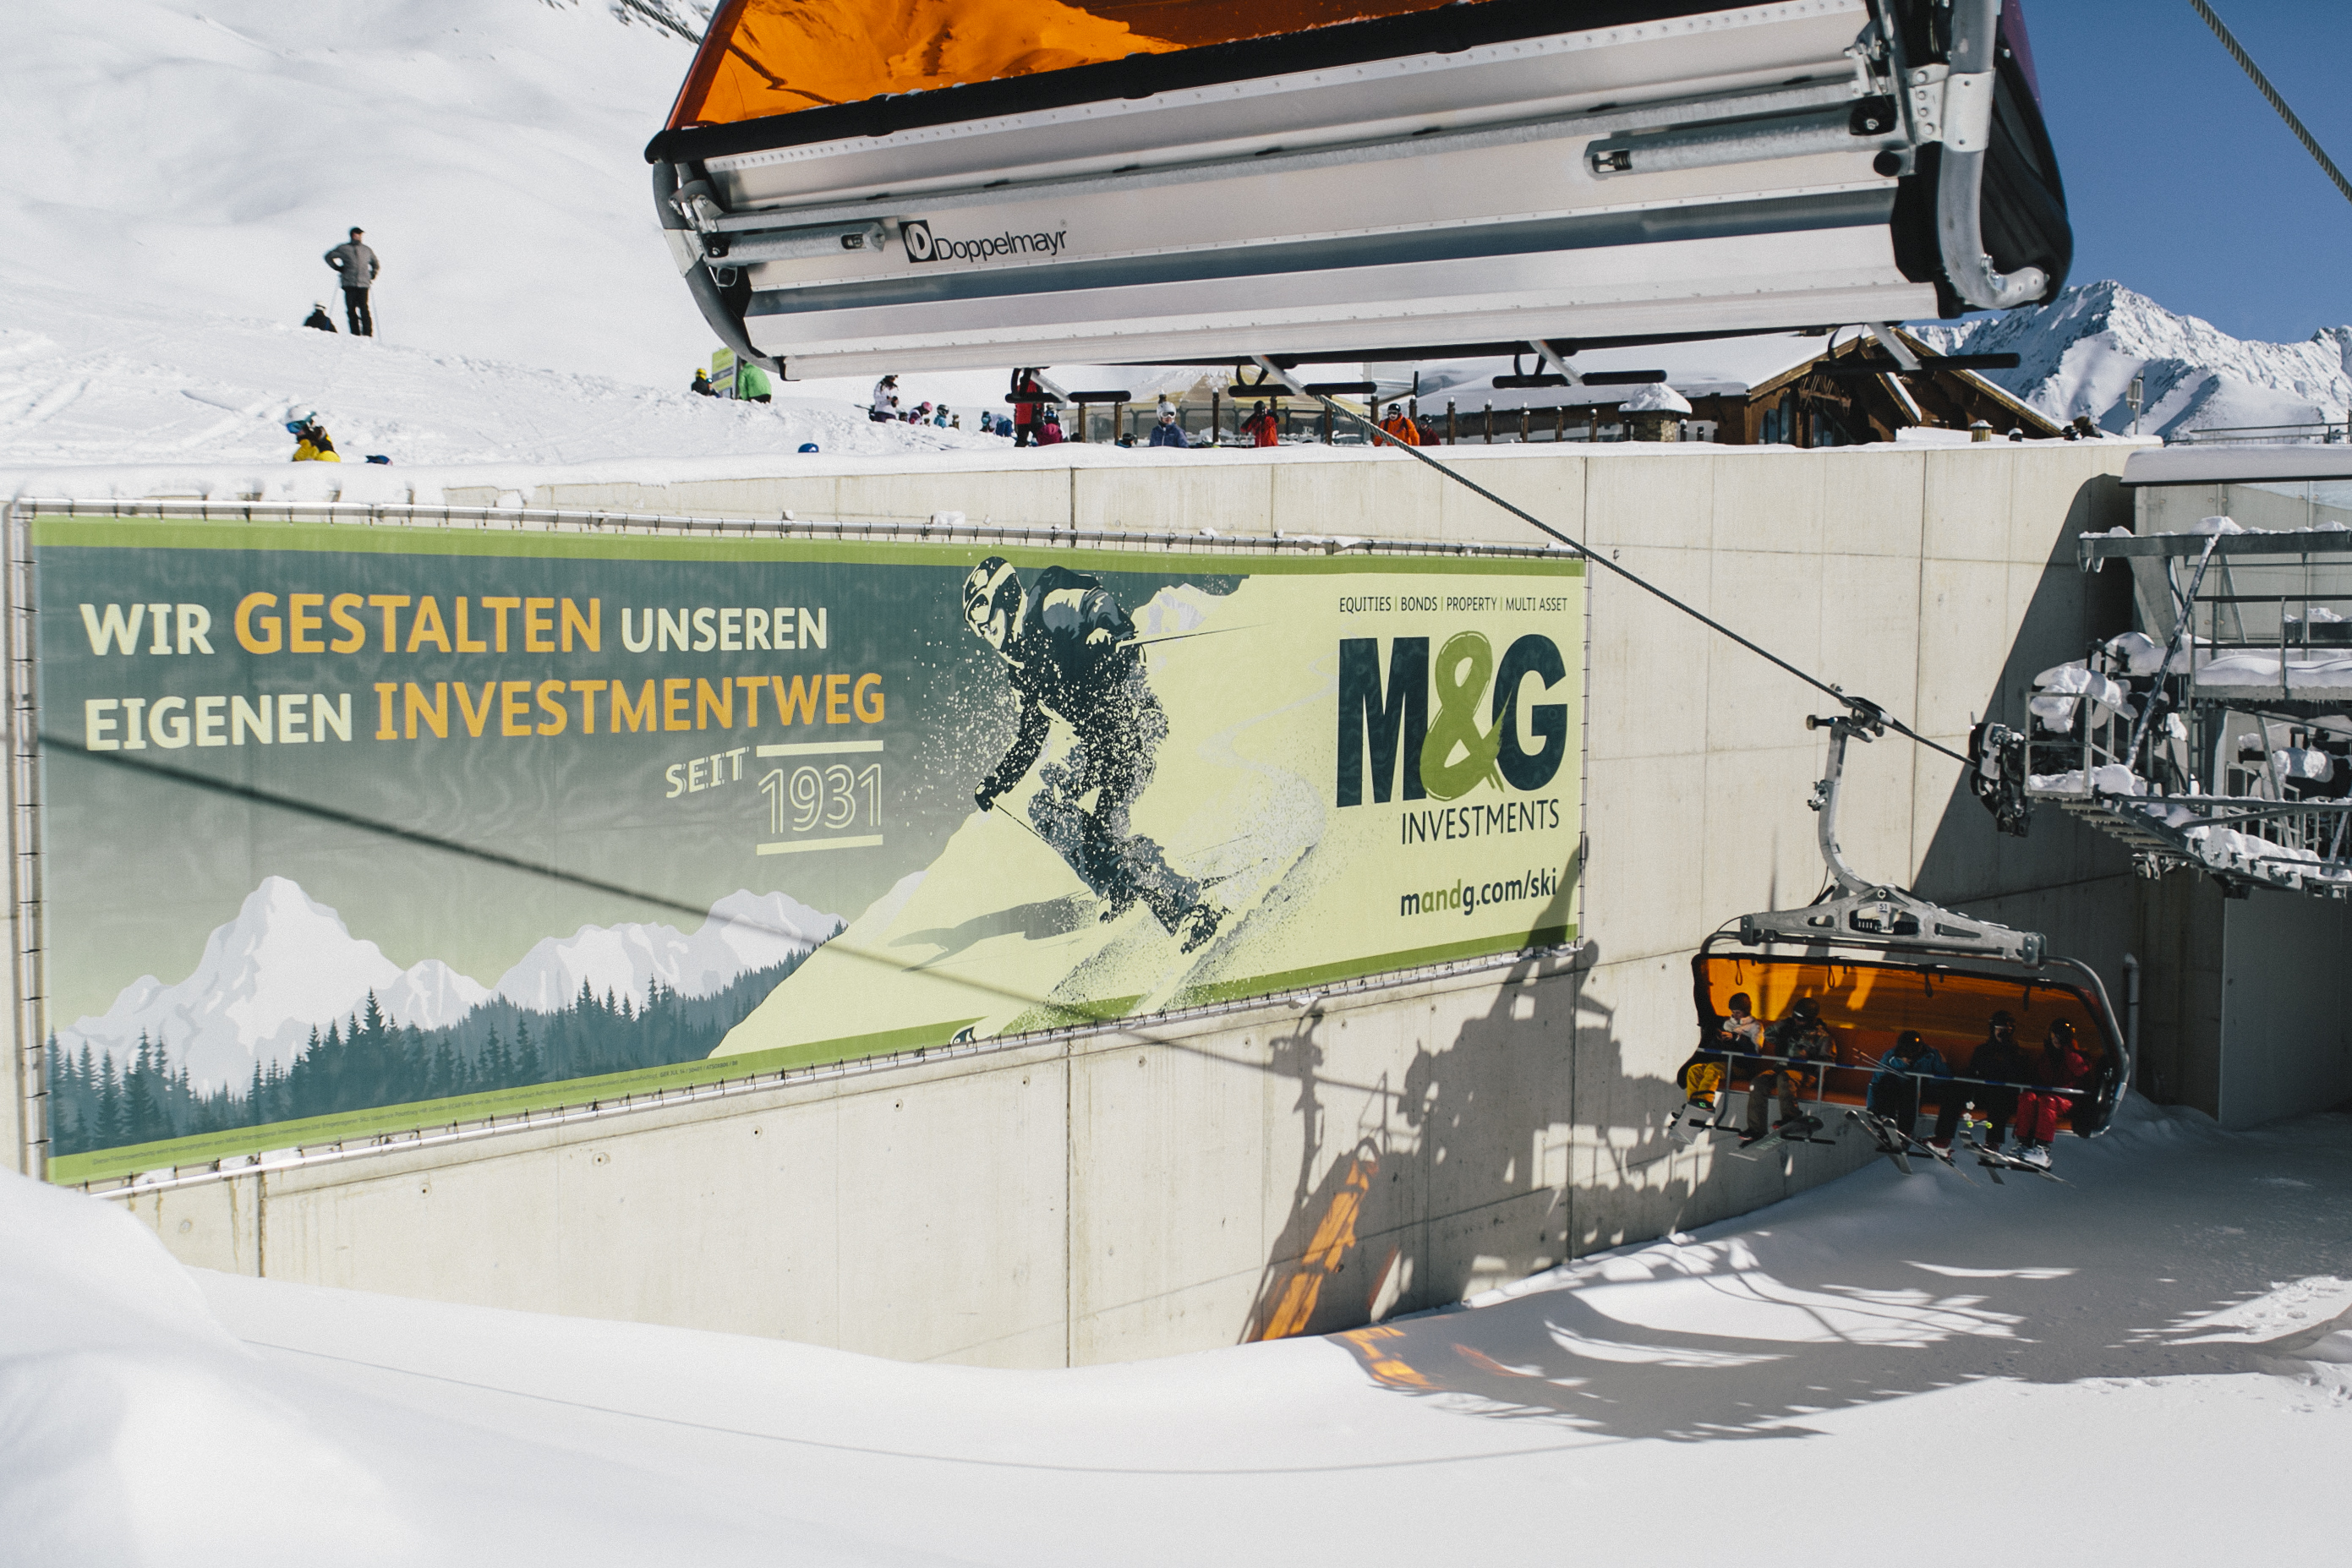 M&G Investments - Alpdest